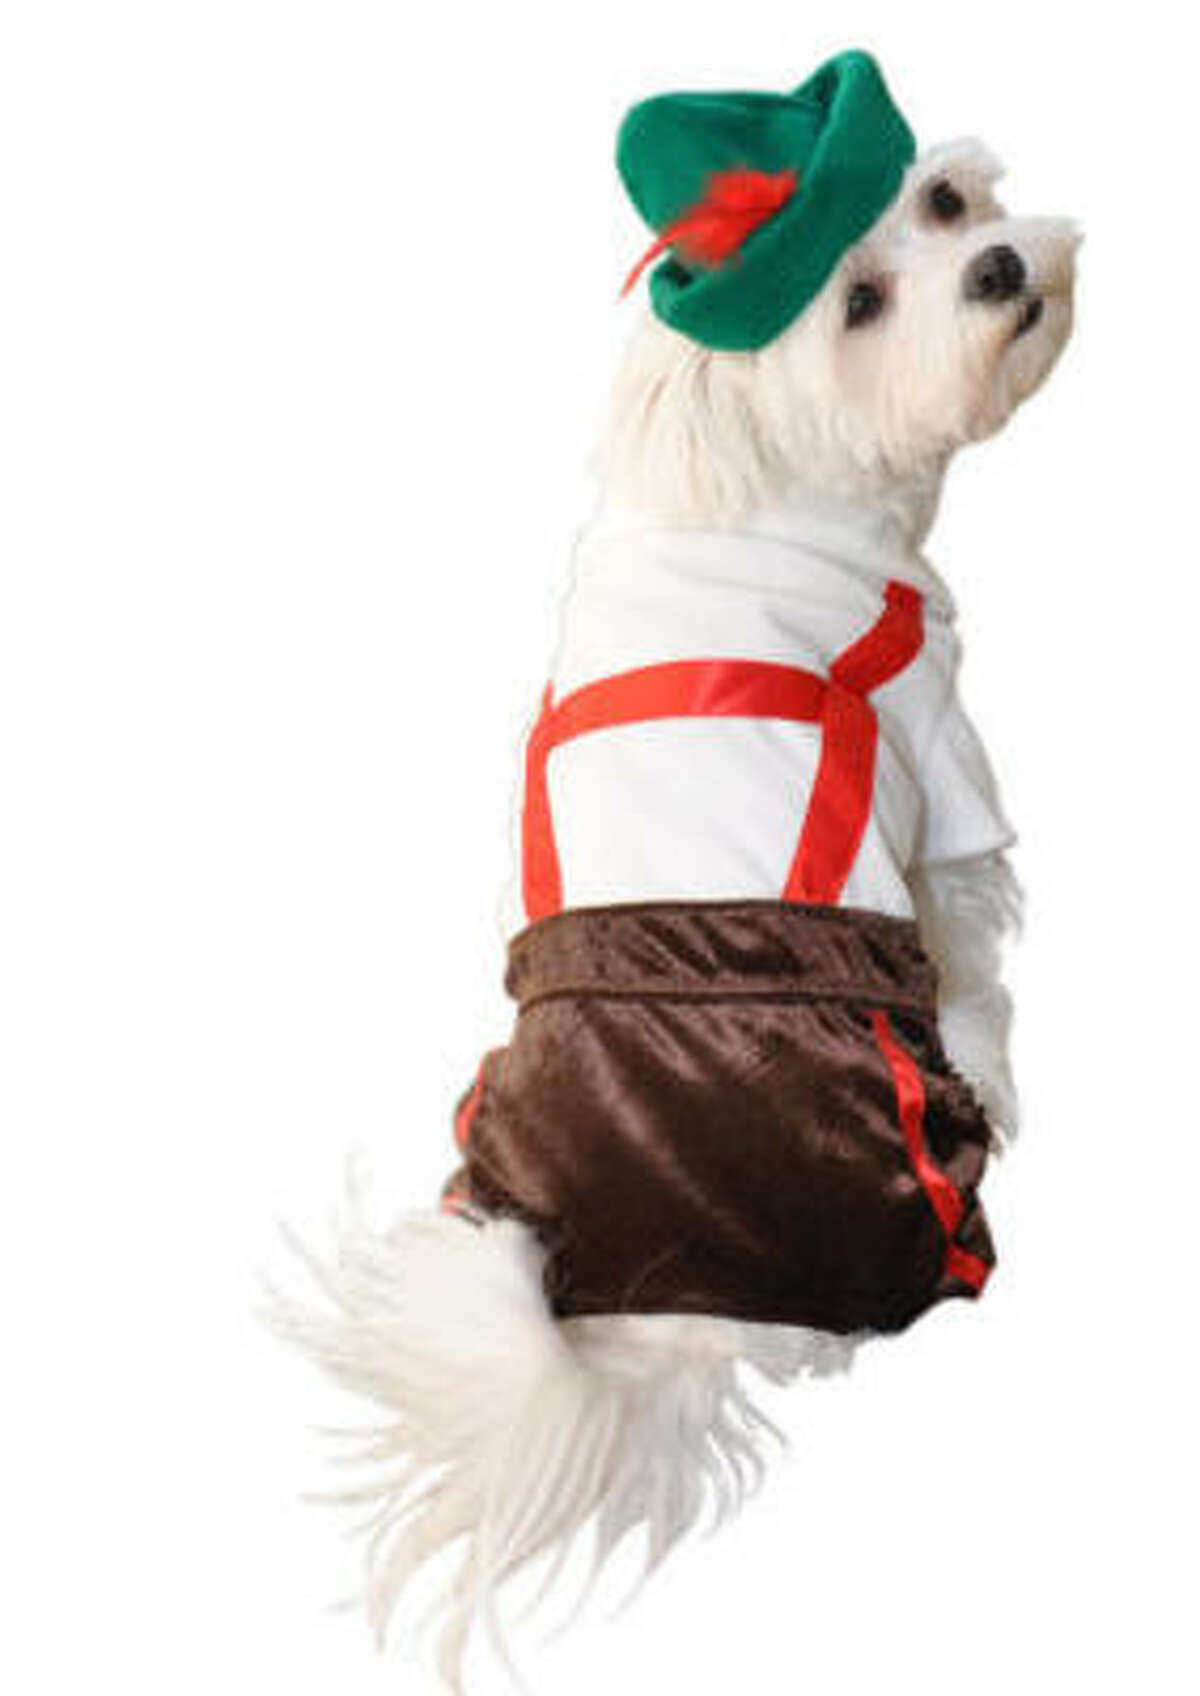 Lederhosen by Anit. $32 Share your pics of dogs in costumes.